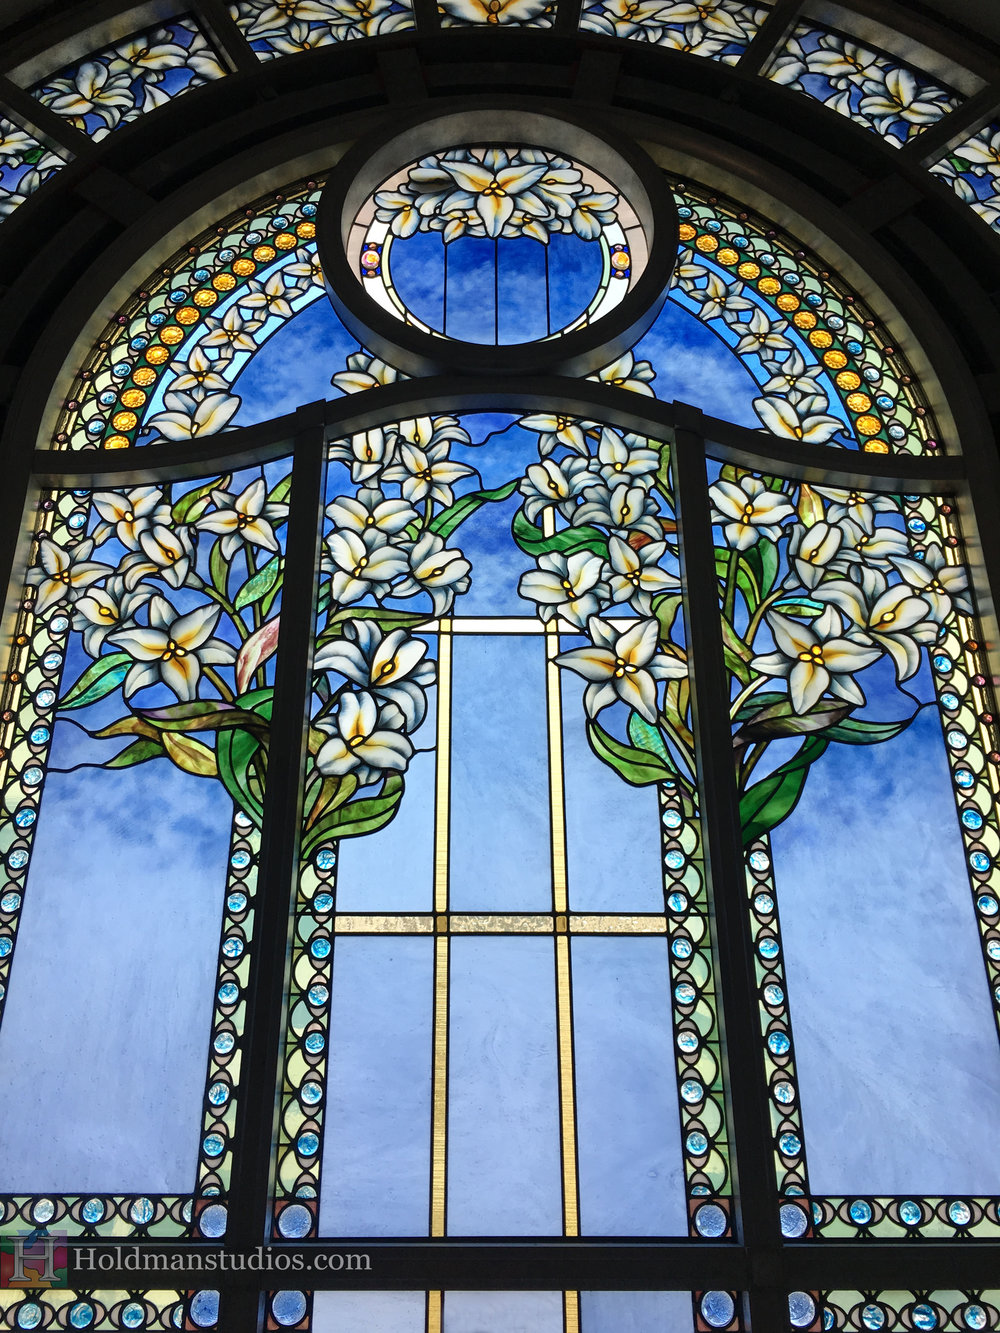 Holdman-Studios-Paris-LDS-Temple-Stained-Glass-Madonna-Lily-Flowers-Leaves-Sun-Moon-Stars-Window.jpg